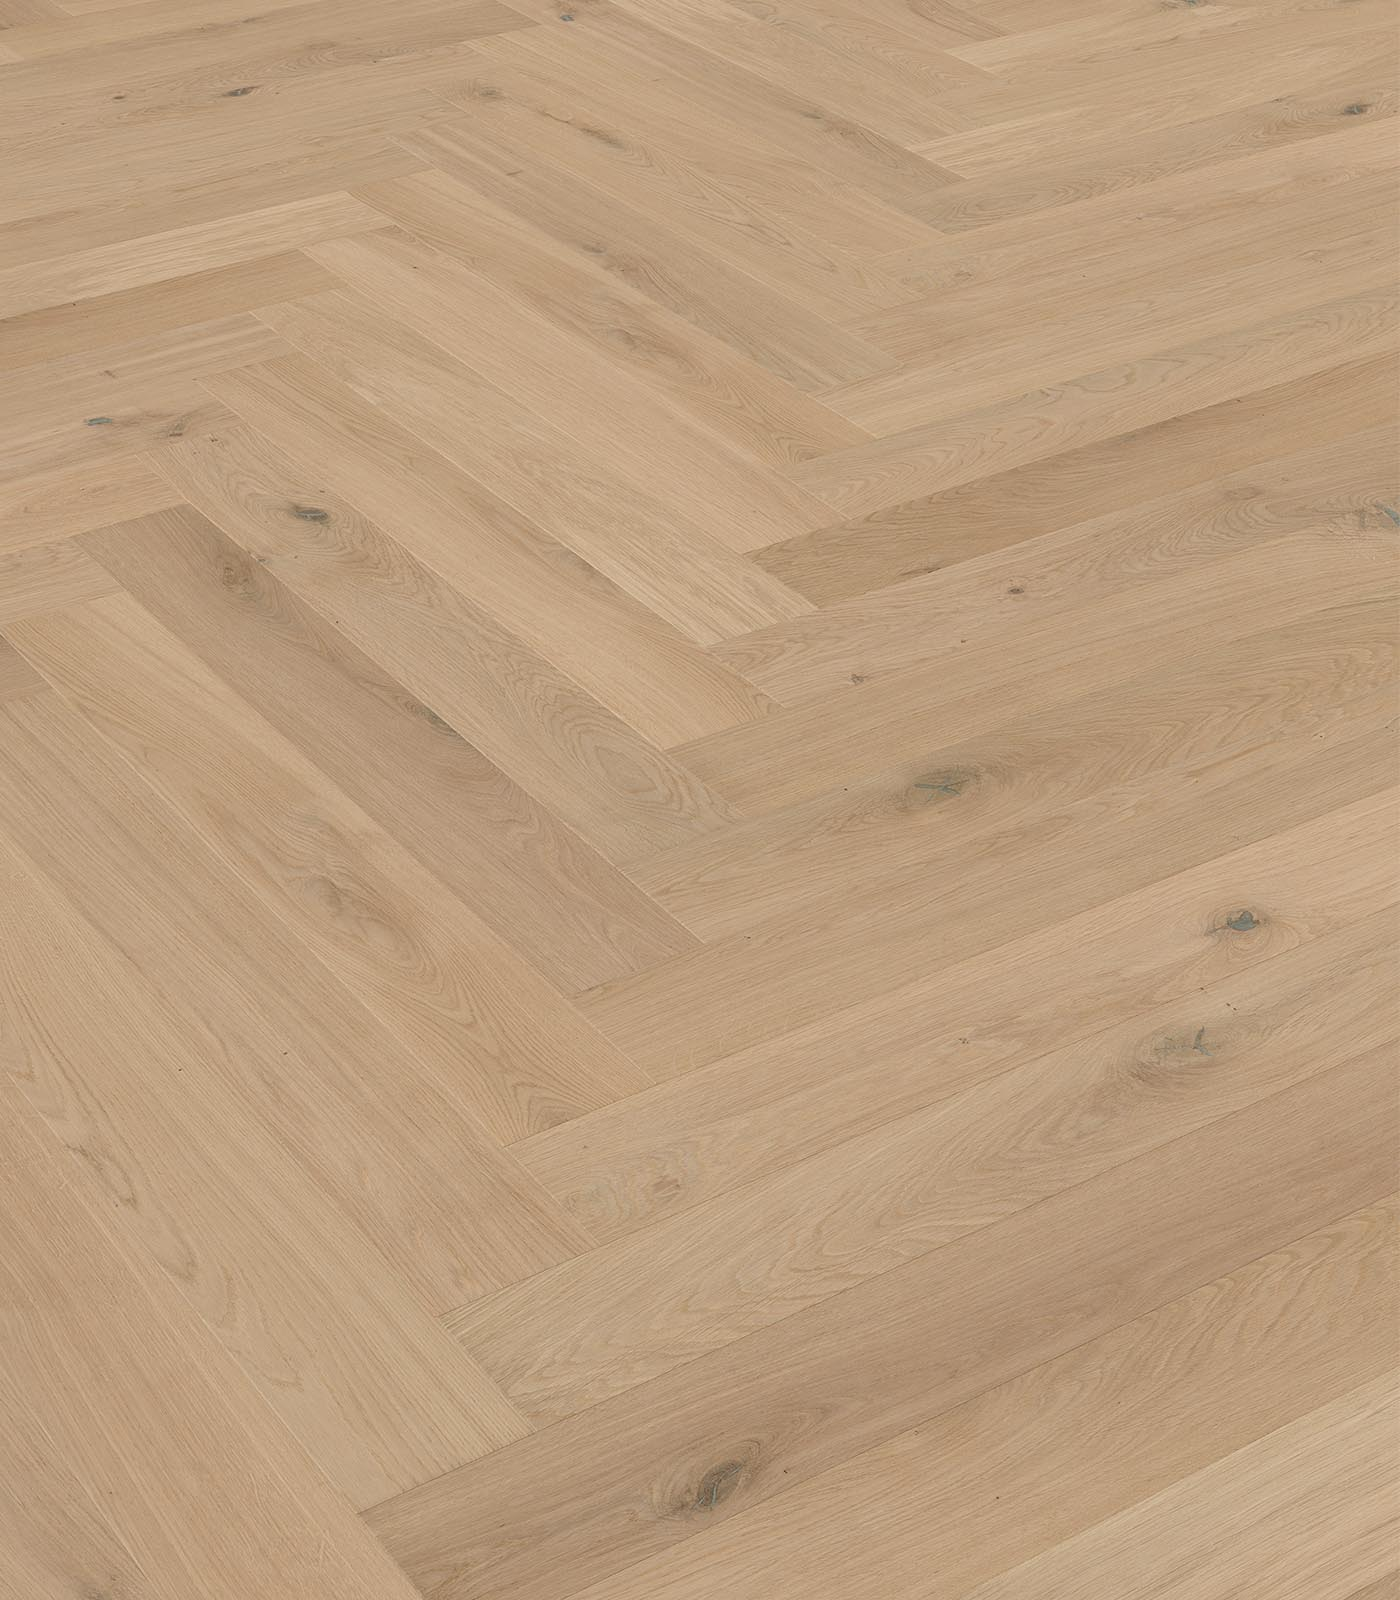 Fashion Collection-Absolute herringbone European Oak planks-Forestry Timber-angle